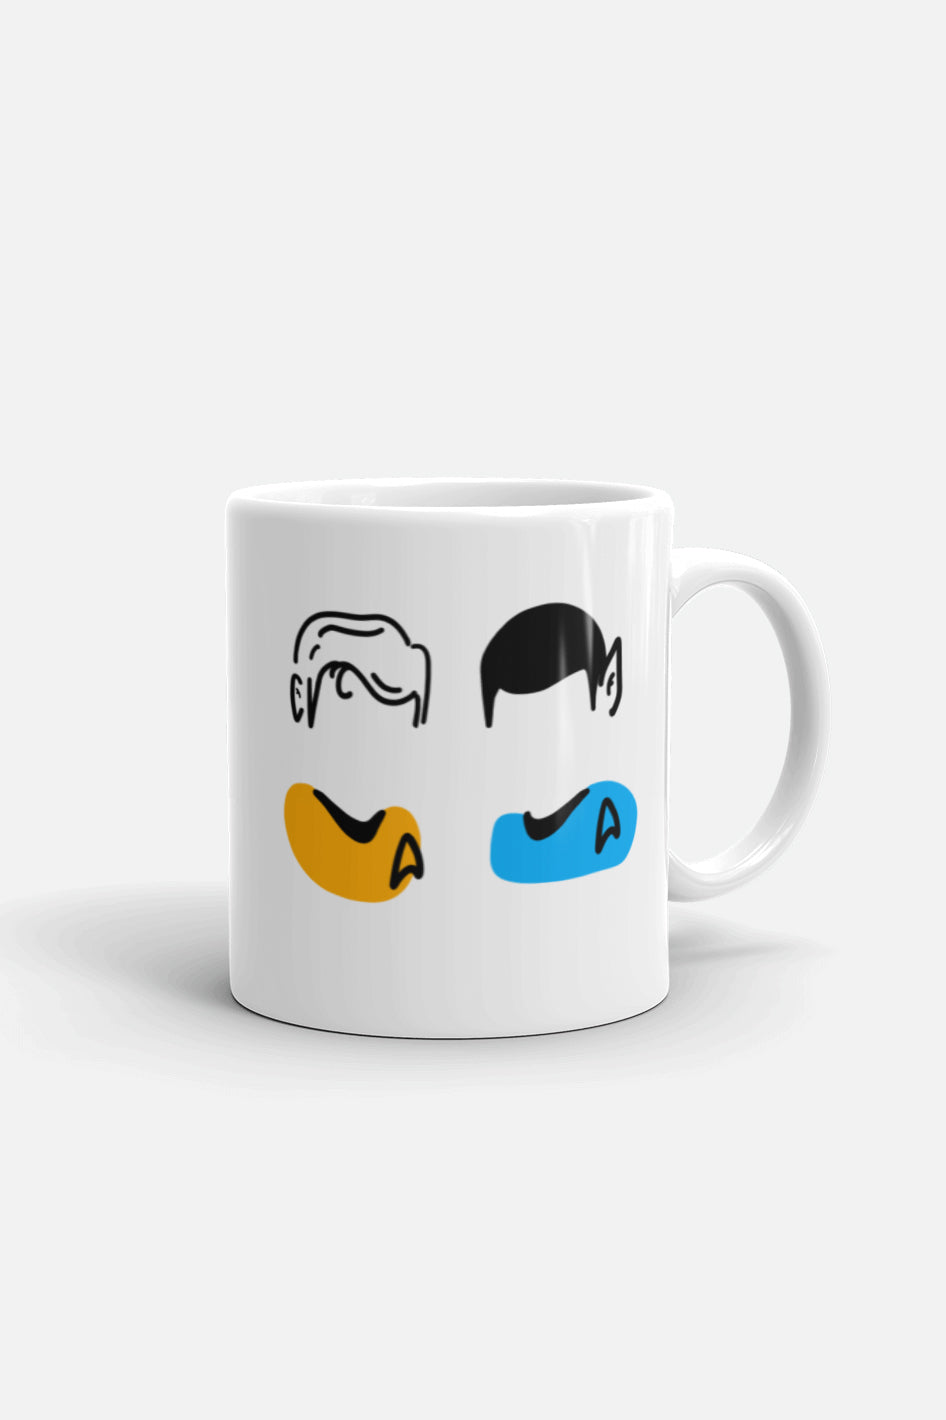 I Have Always Been Your Friend Mug